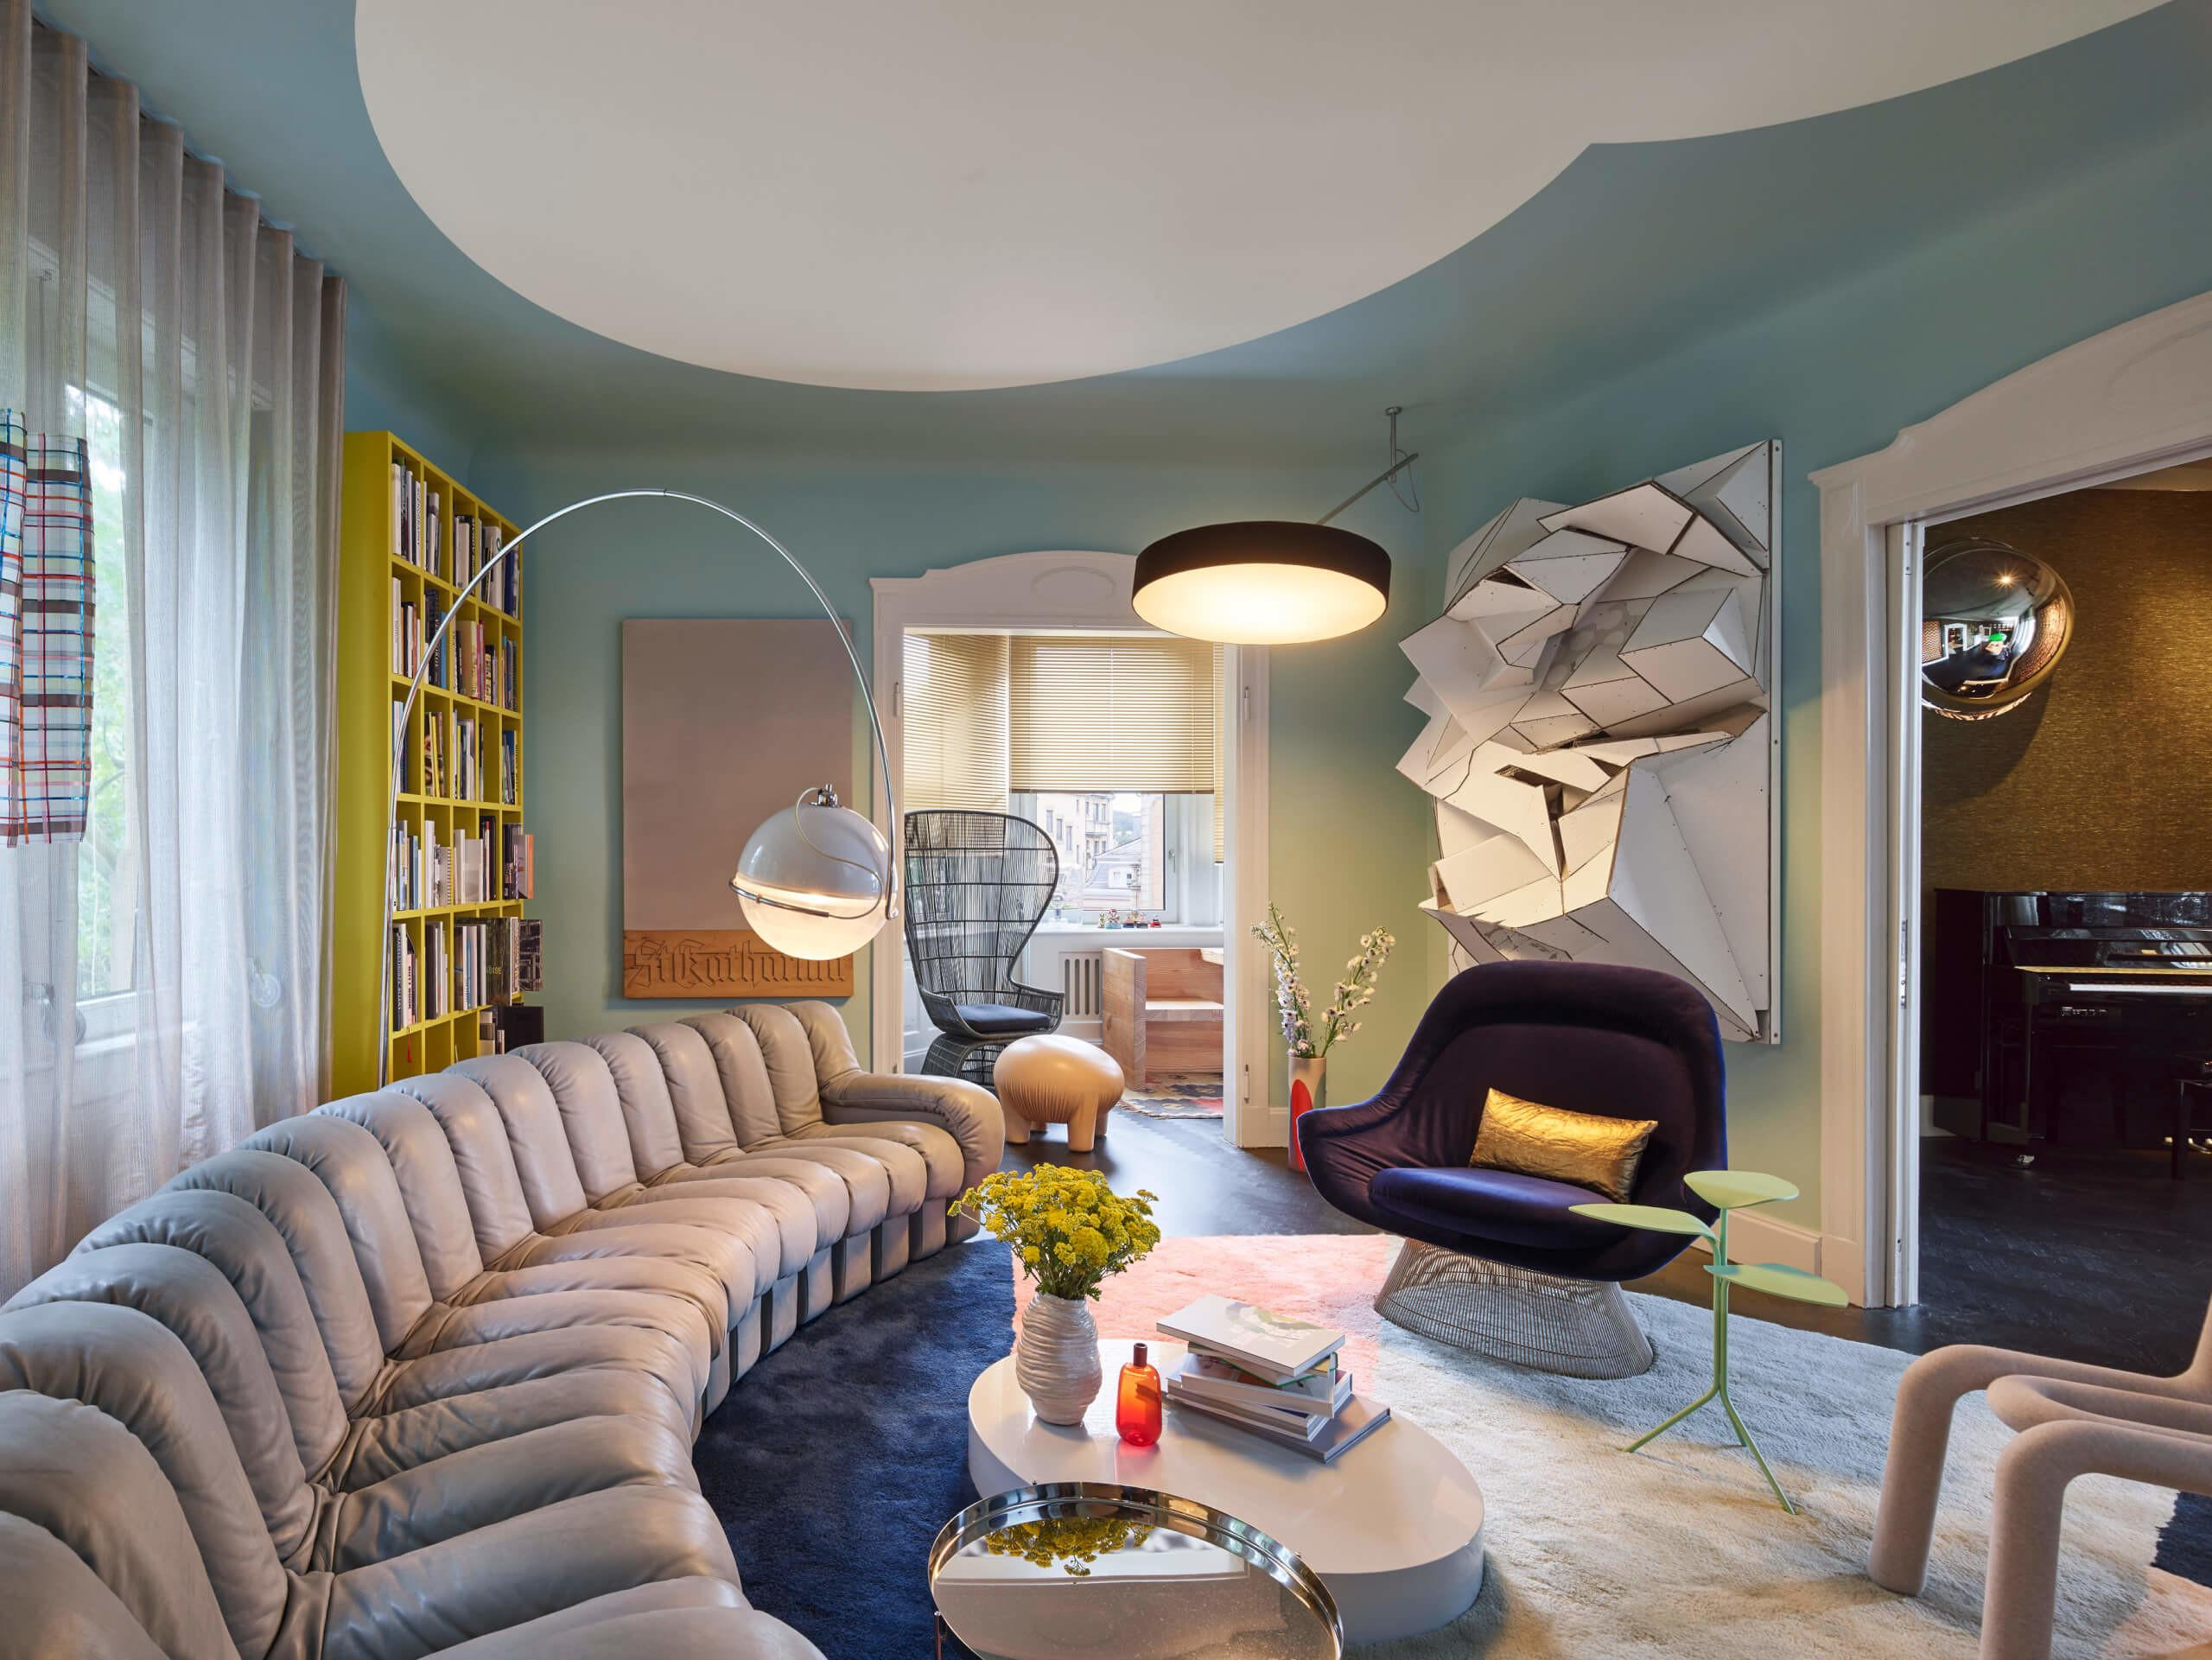 Colorful Eclectic Interior Design Collage Travels